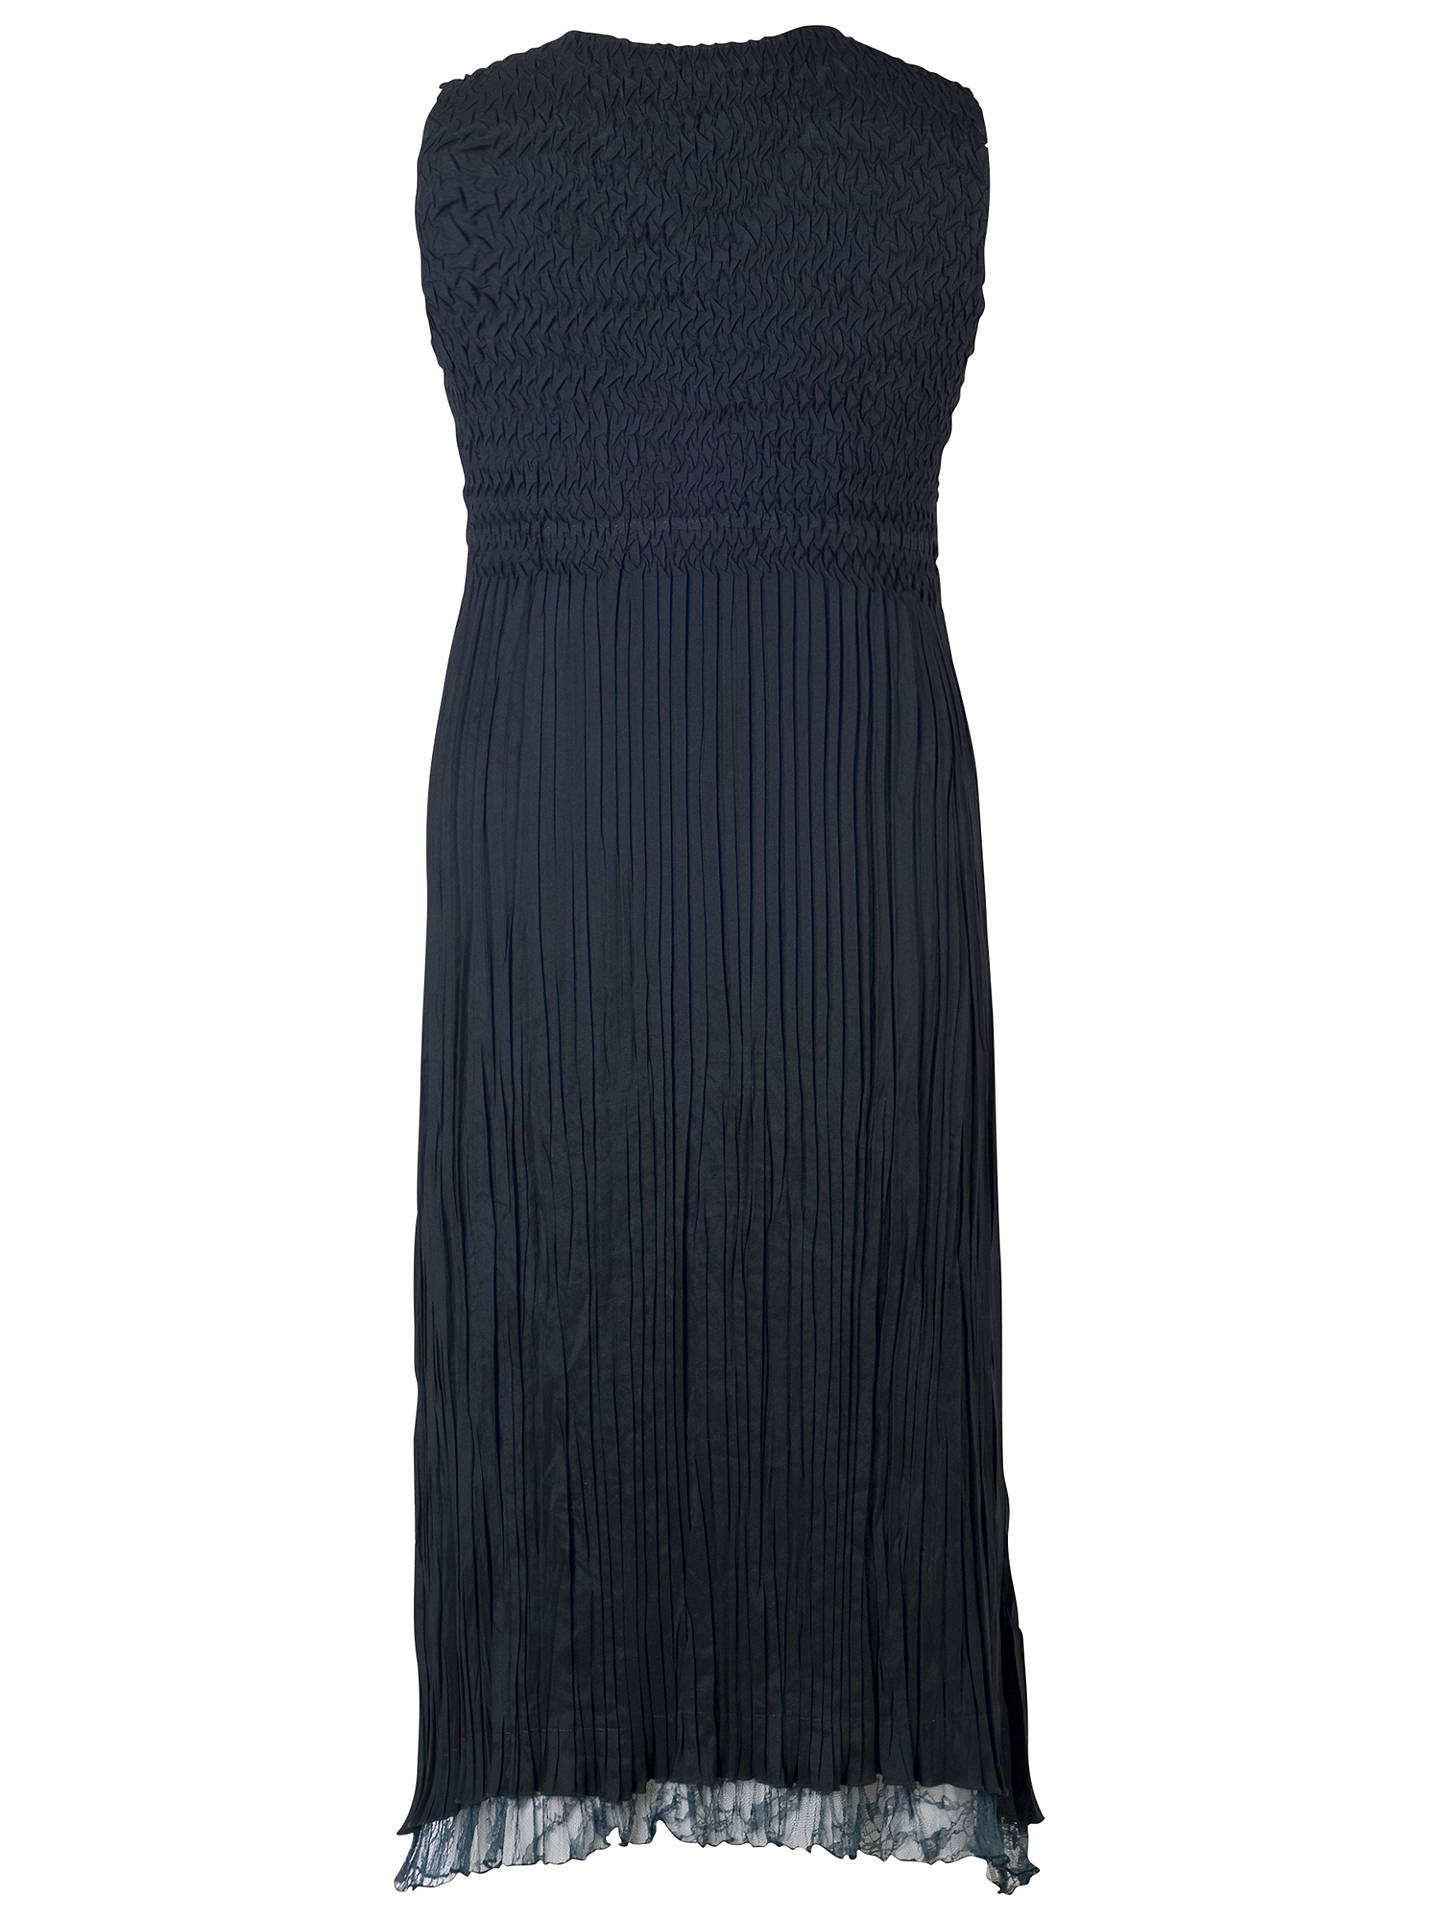 Buy Chesca Crush Pleat Sleeveless V-Neck with Lace & Satin Trim Dress, Ink, 10-12 Online at johnlewis.com